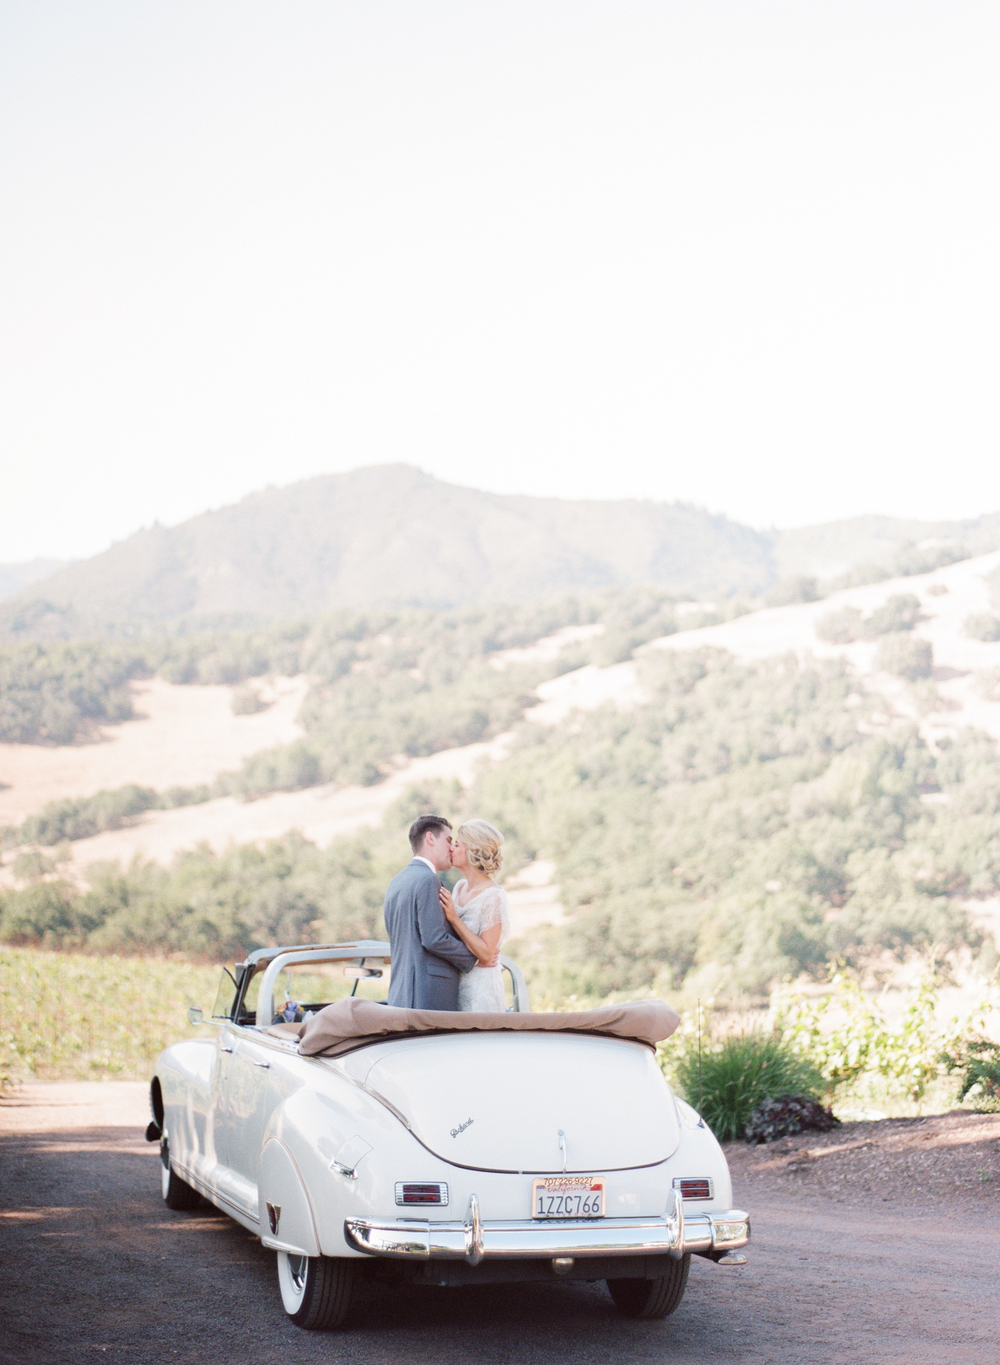 Whitney and Justin pose in a vintage convertible in California wine country for a couple shoot with Sylvie Gil